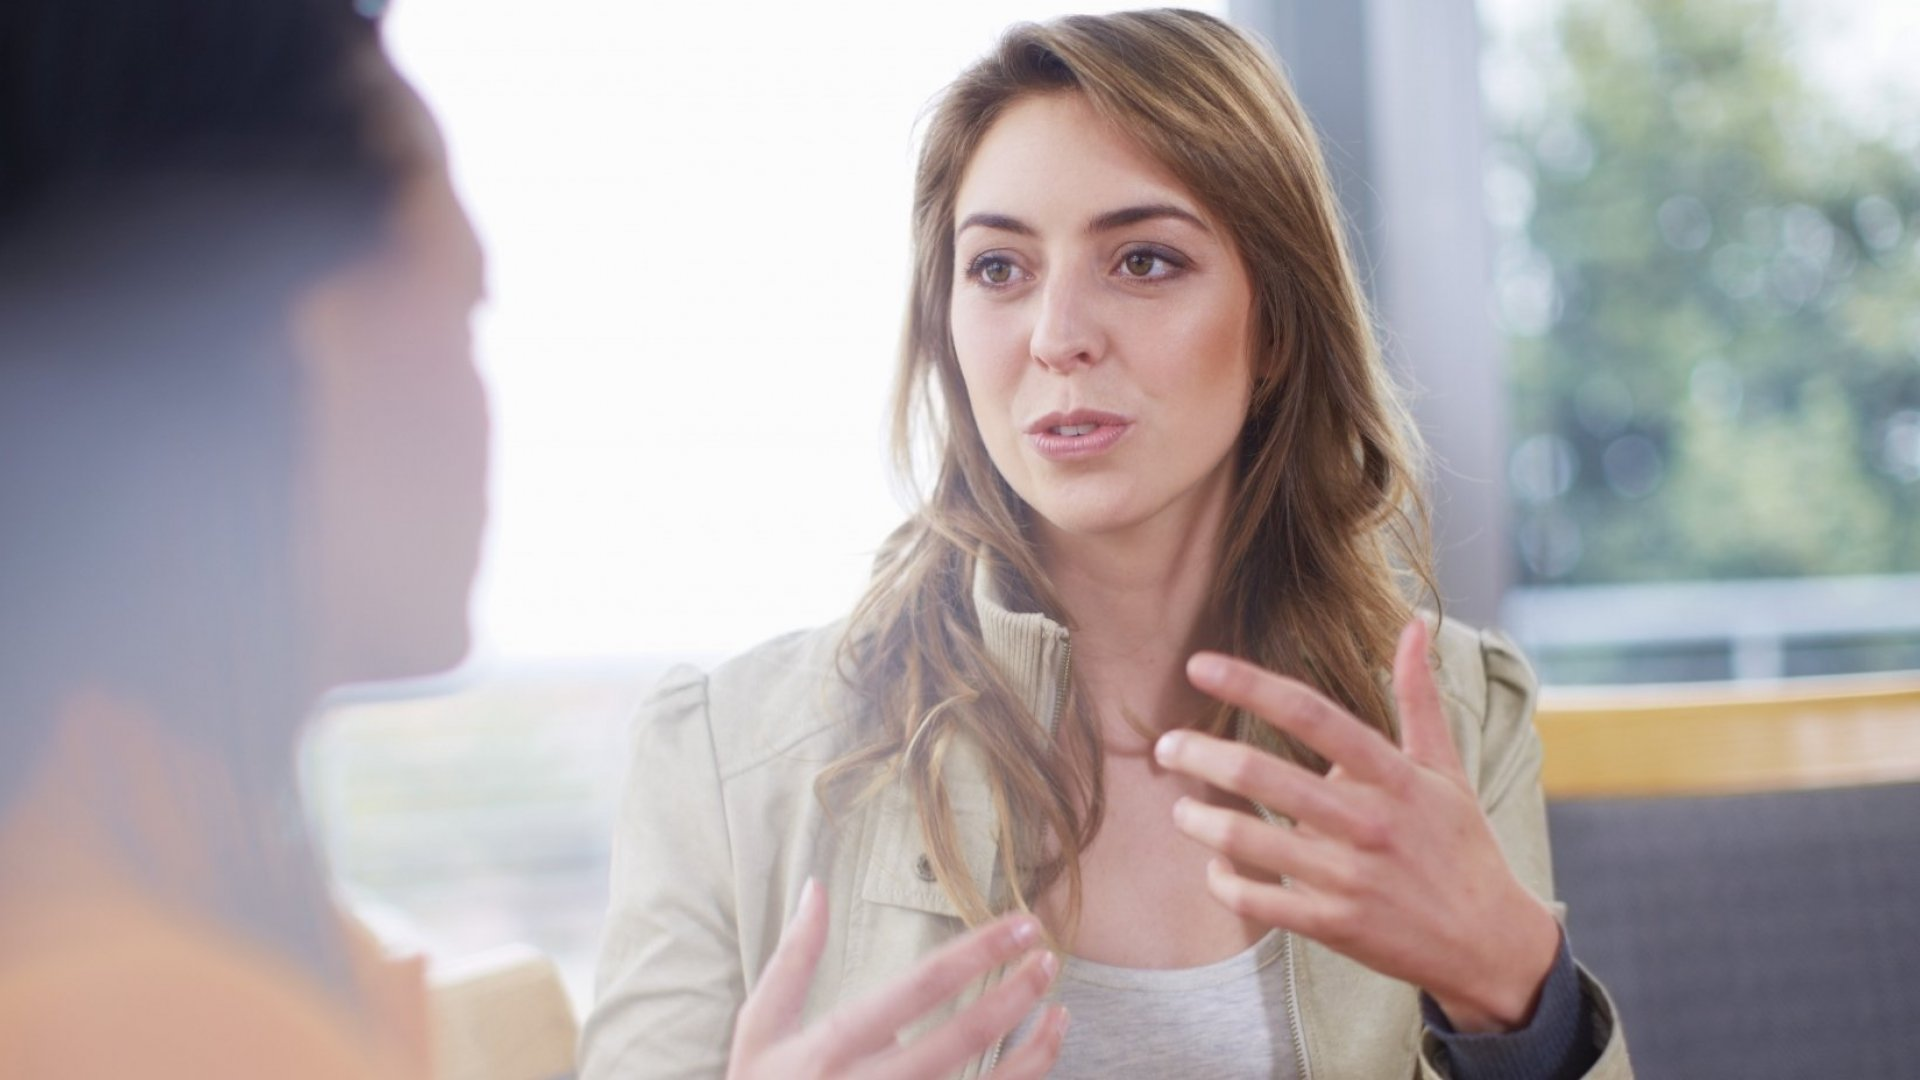 7 Negotiation Tactics That Will Get You the Salary You Want This Year